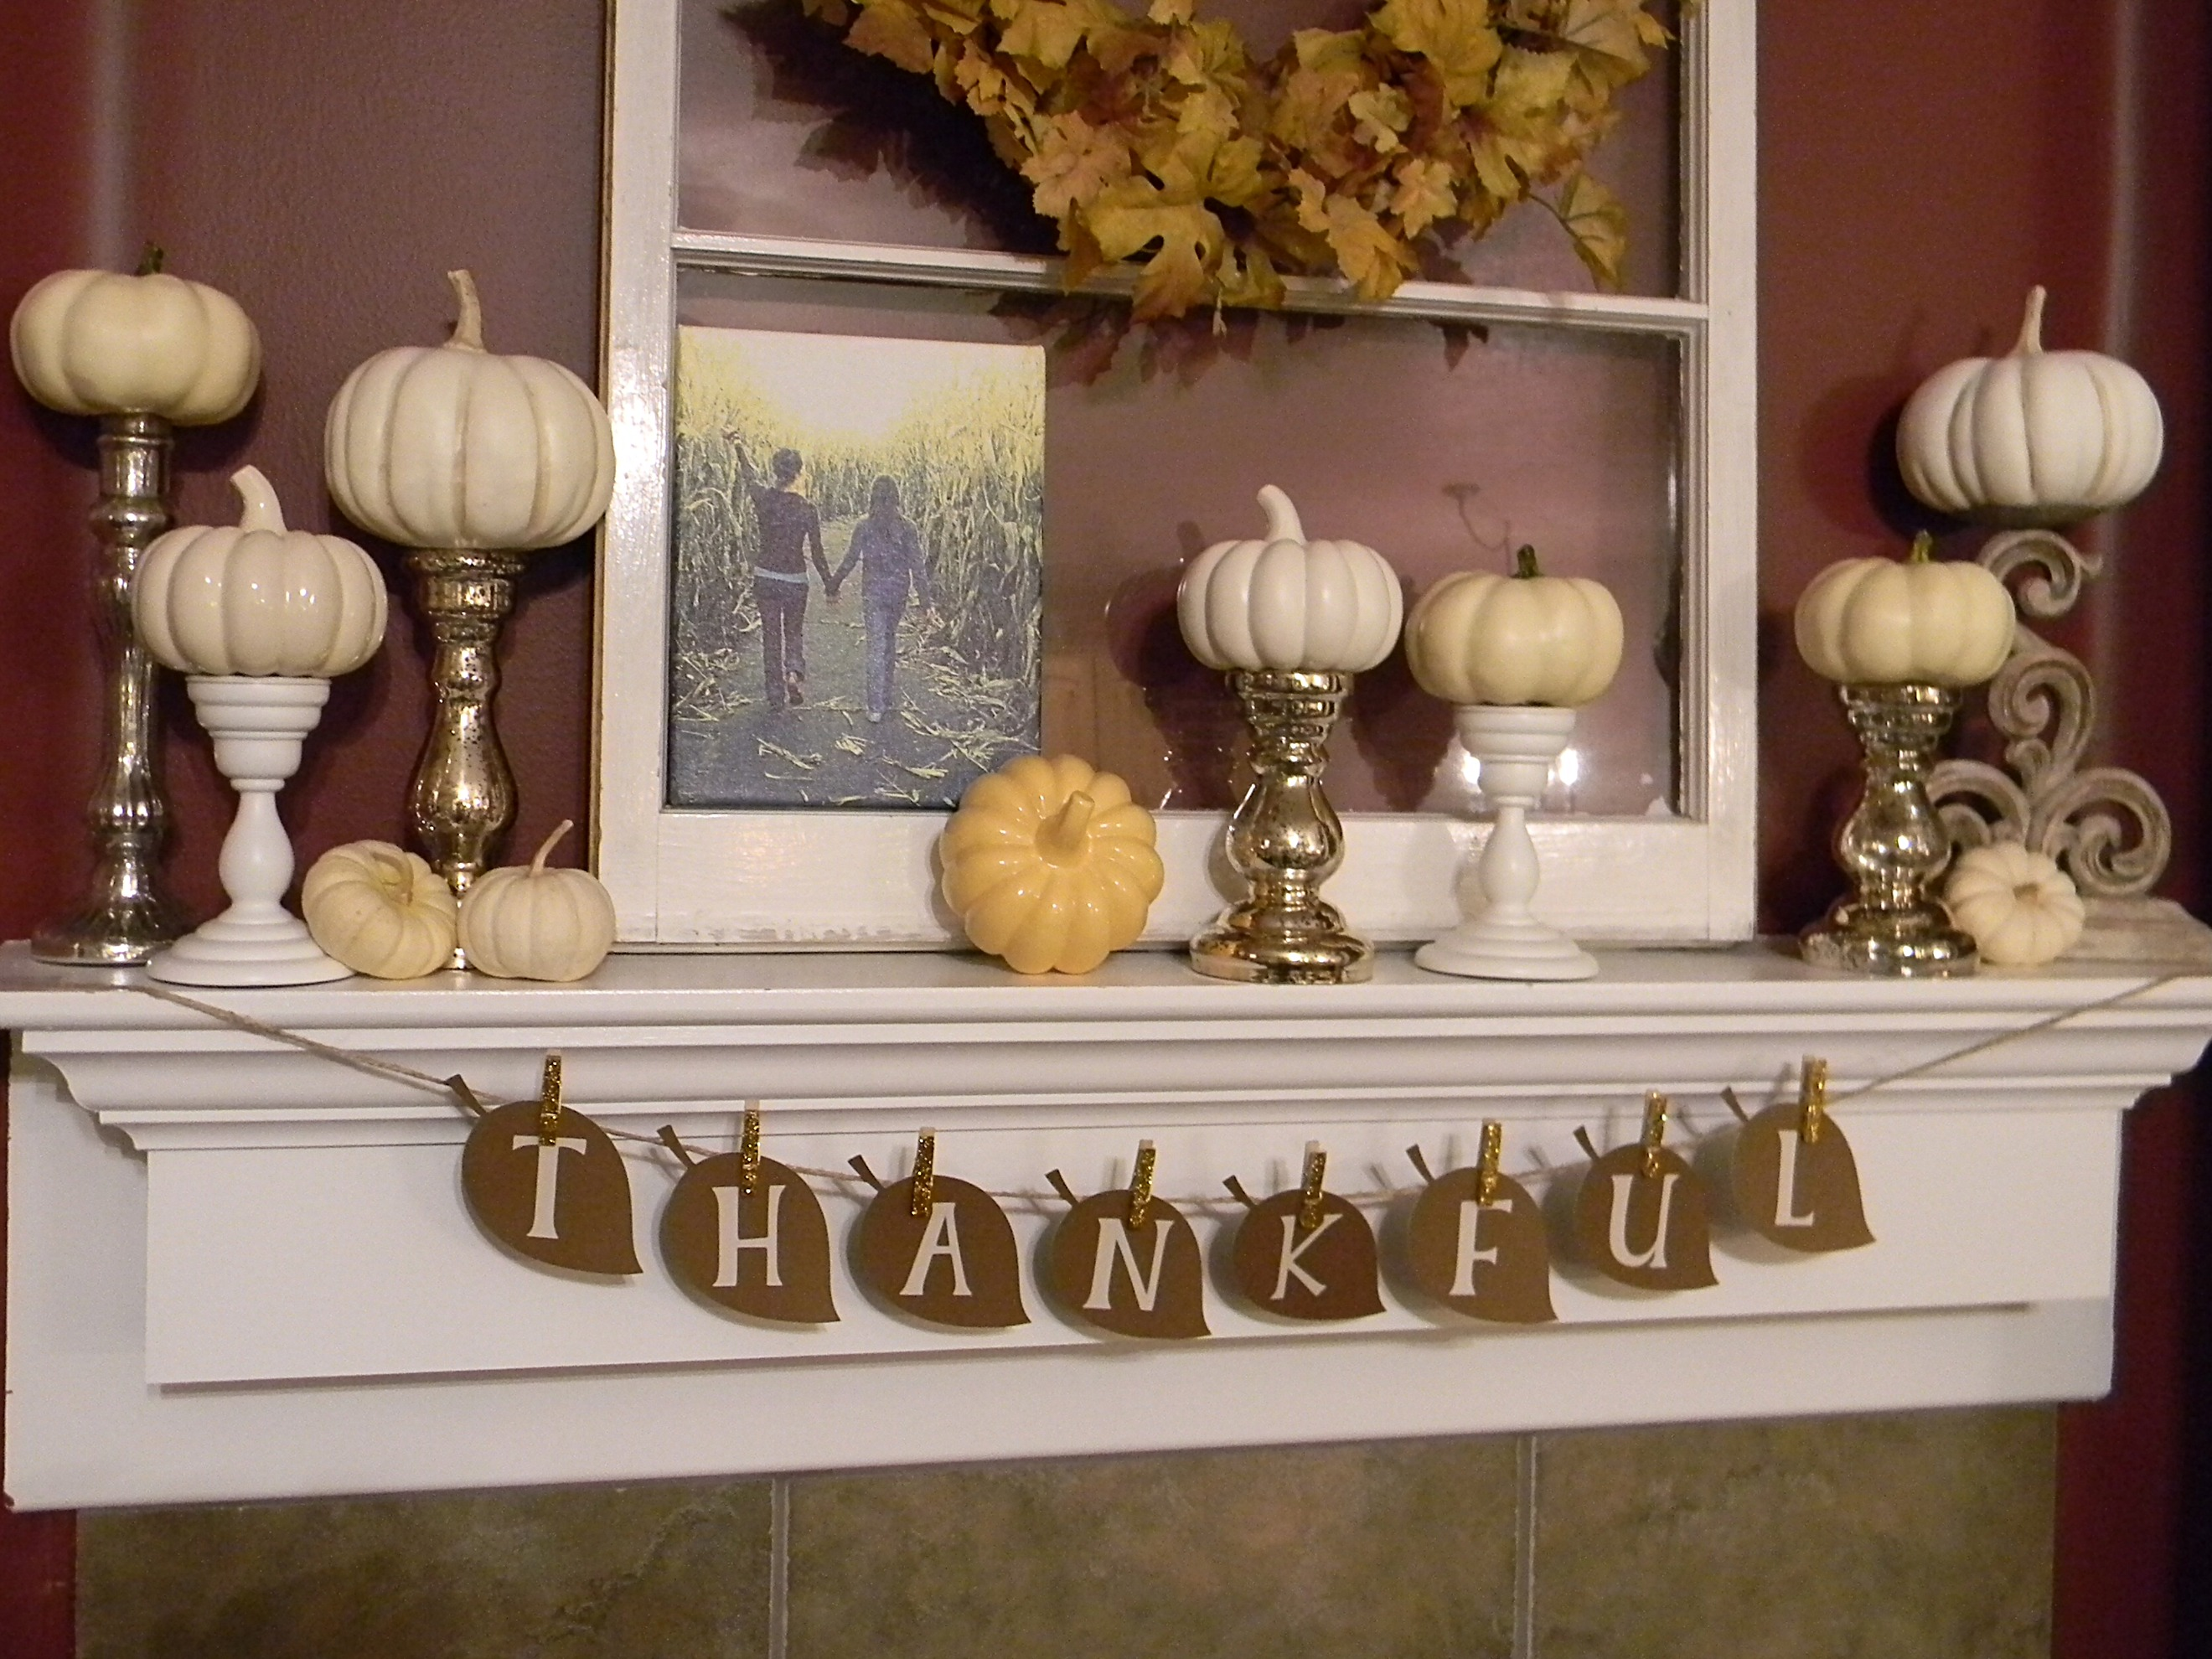 Thanksgiving Home Decorations Of Dishfunctional Designs Creative Ideas For Thanksgiving